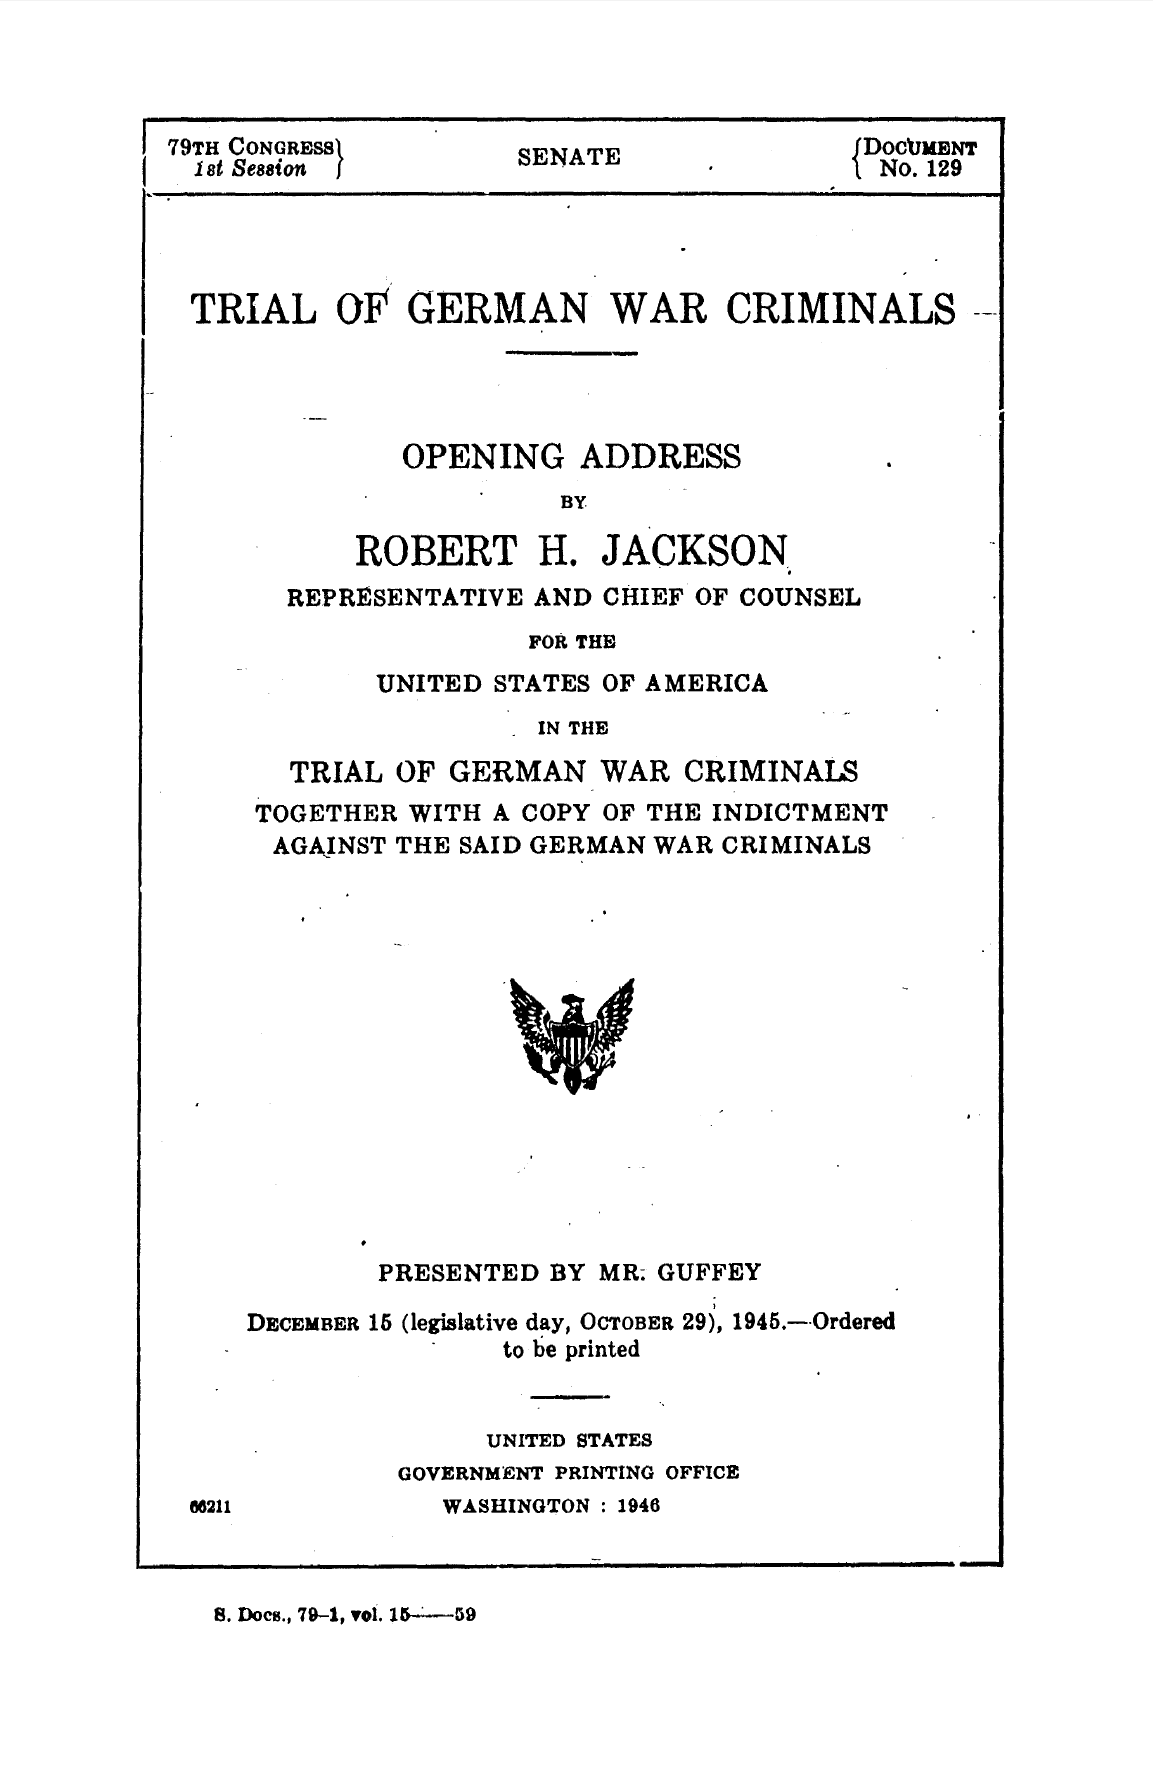 """The following Senate document published in 1945, """"Trial of German War Criminals: Opening address by Robert H.Jackson..."""" is a transcription of the opening speech given during the Nuremberg trials. This is a primary source report of the original trial proceedings which contain the trial indictment."""